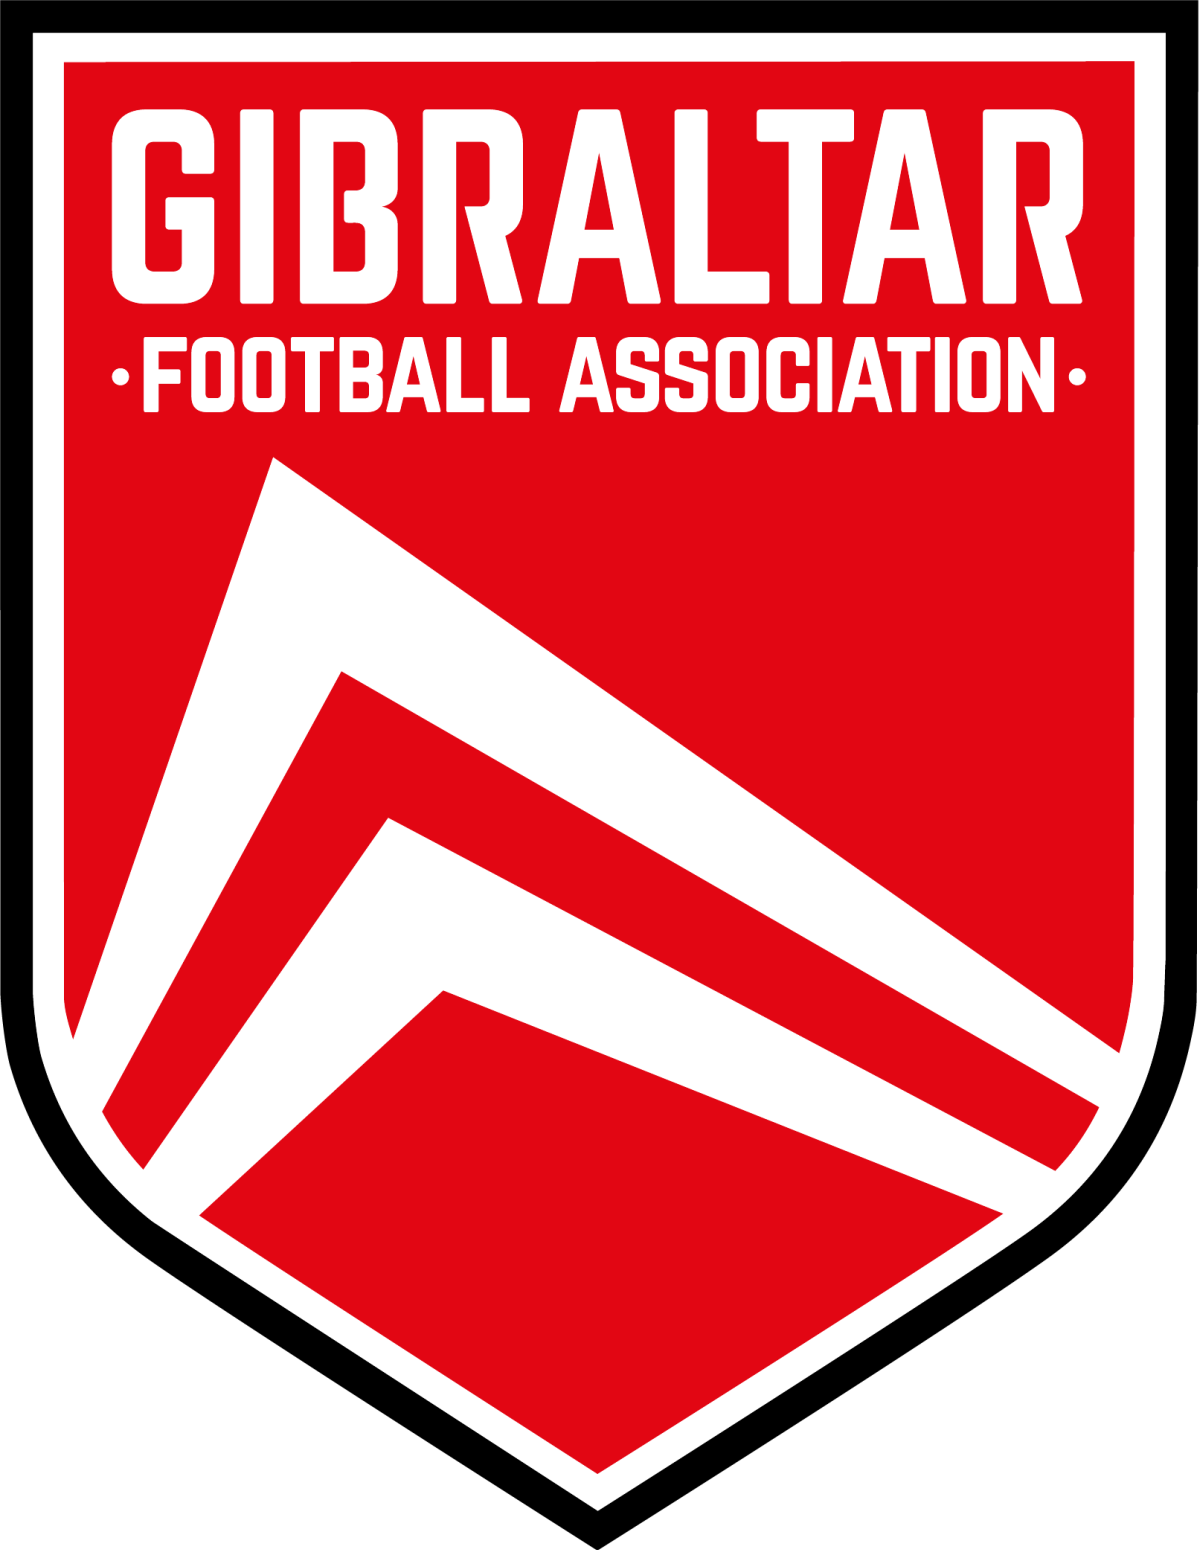 Gibraltar Vs Norway Live Stream 2021 | FIFA QF